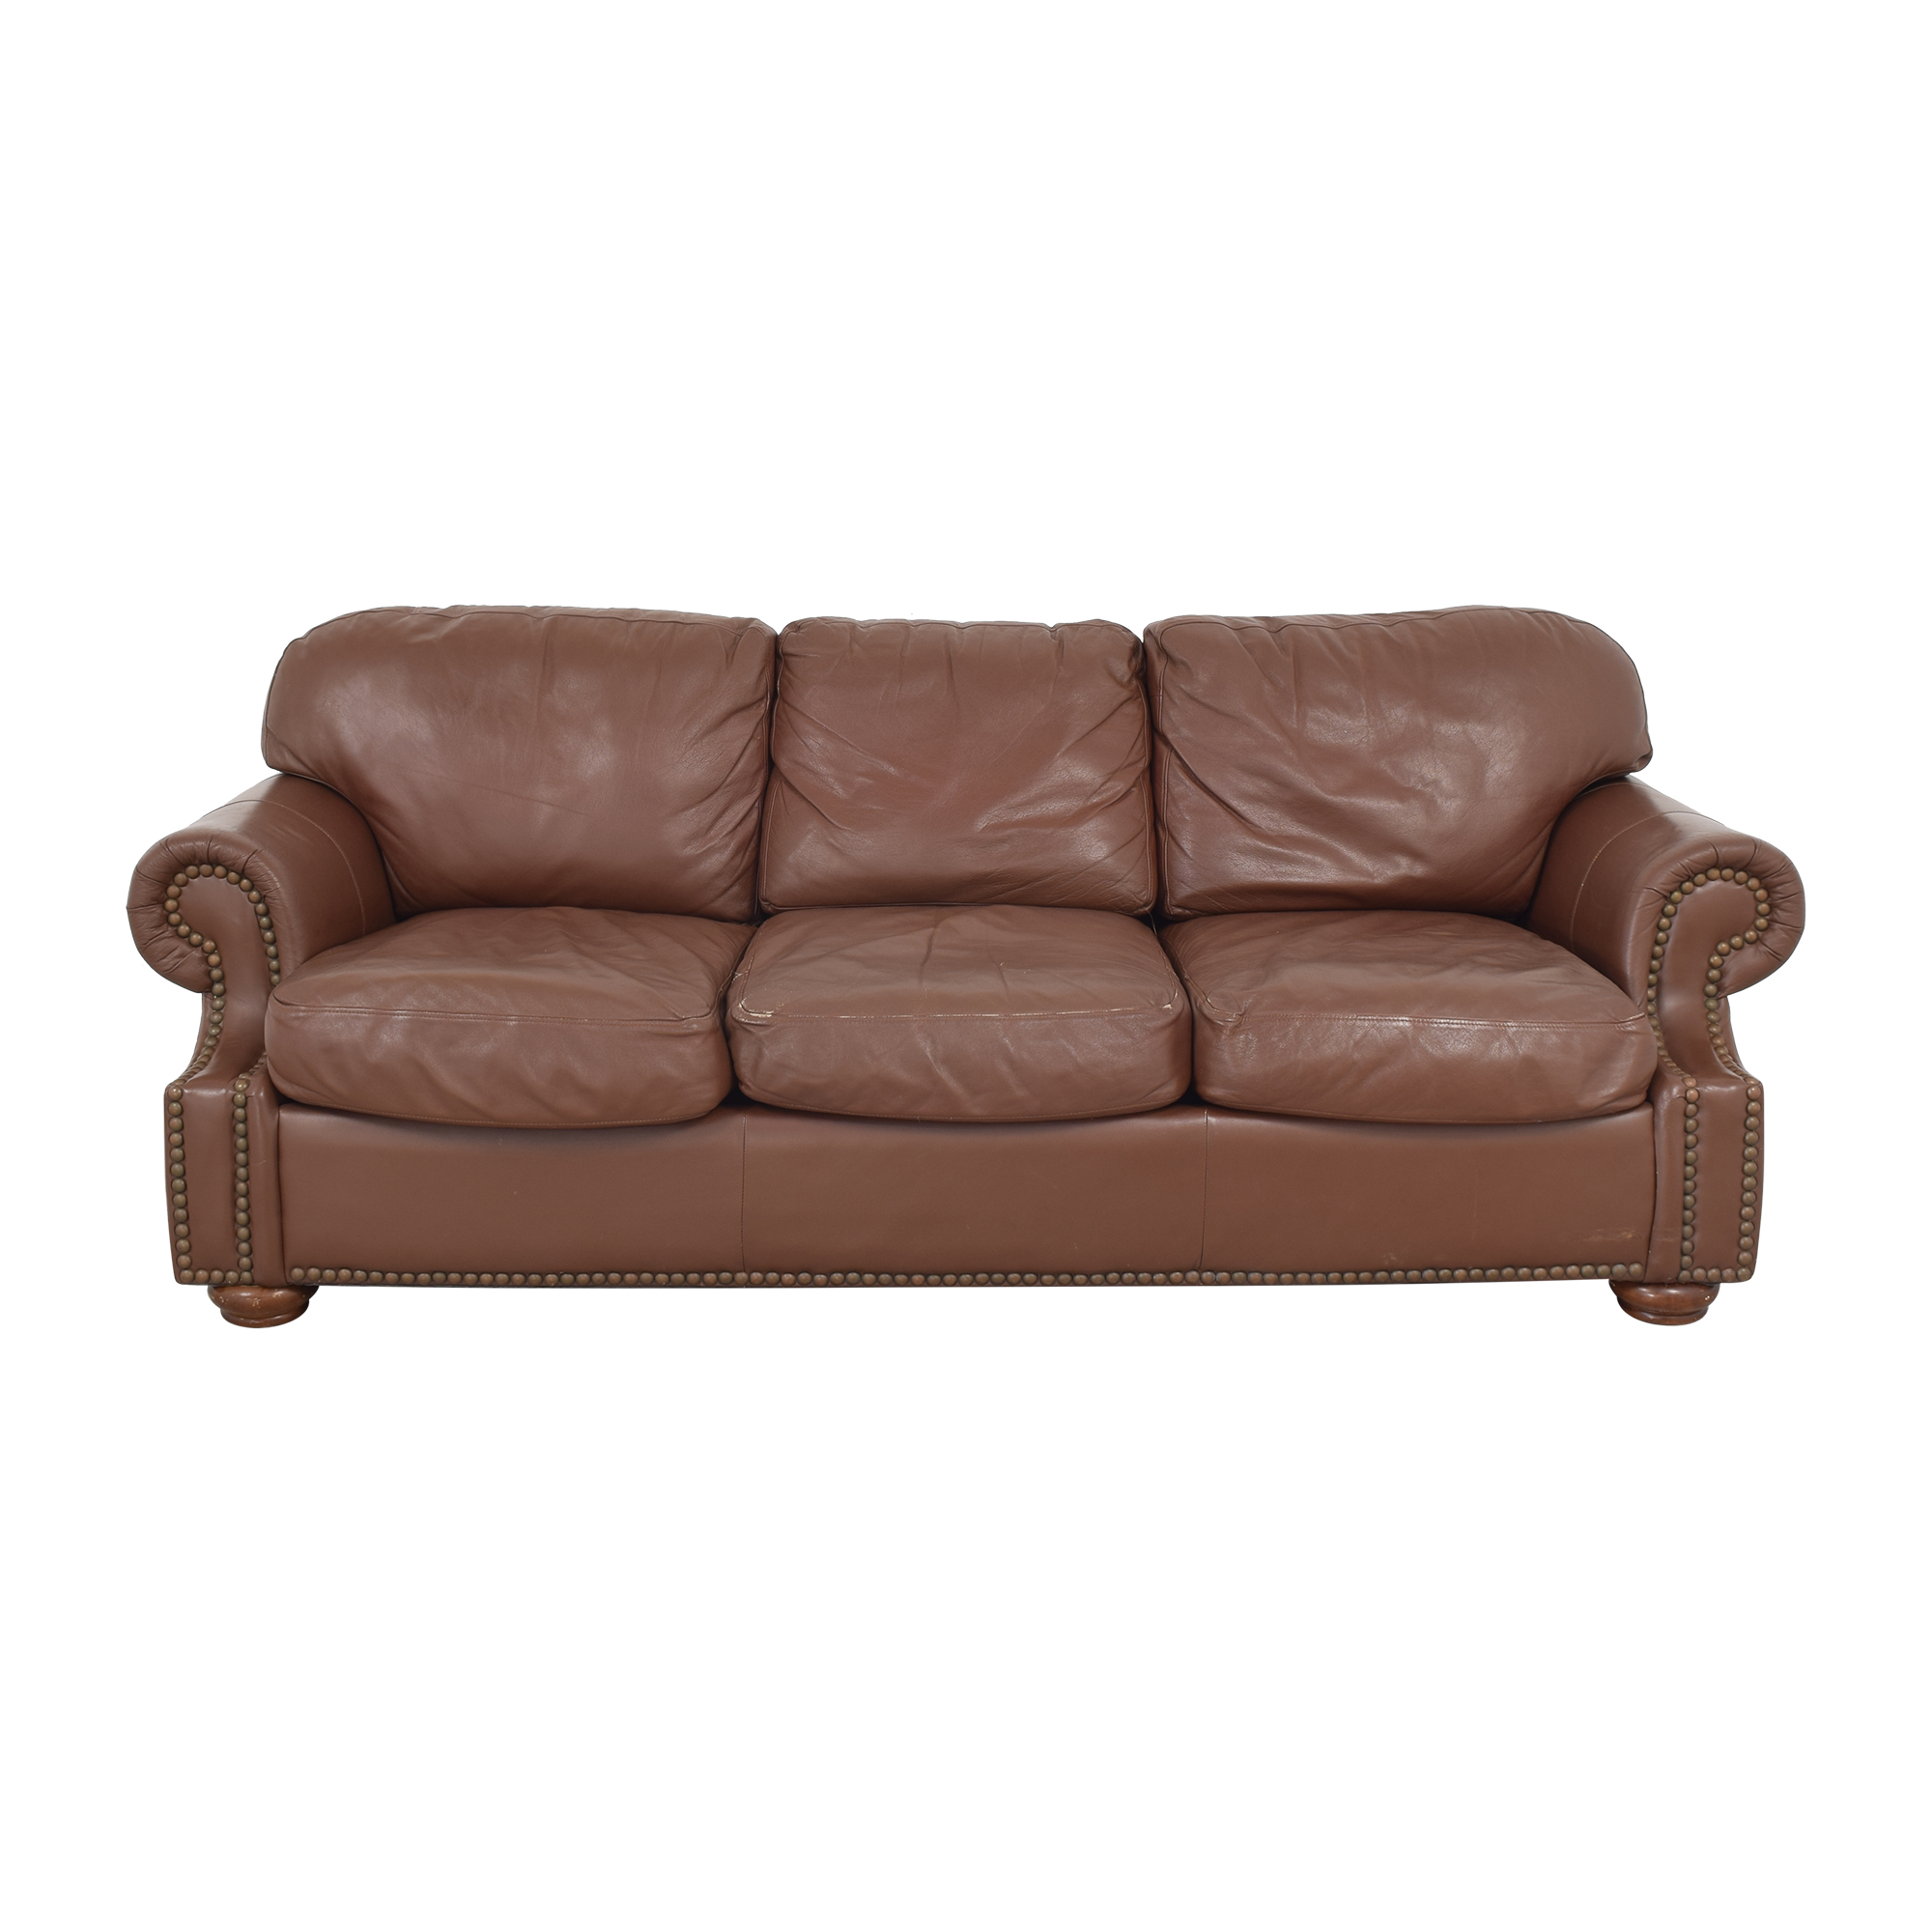 shop Arhaus Arhaus Rolled Arm Nailhead Trim Sofa online